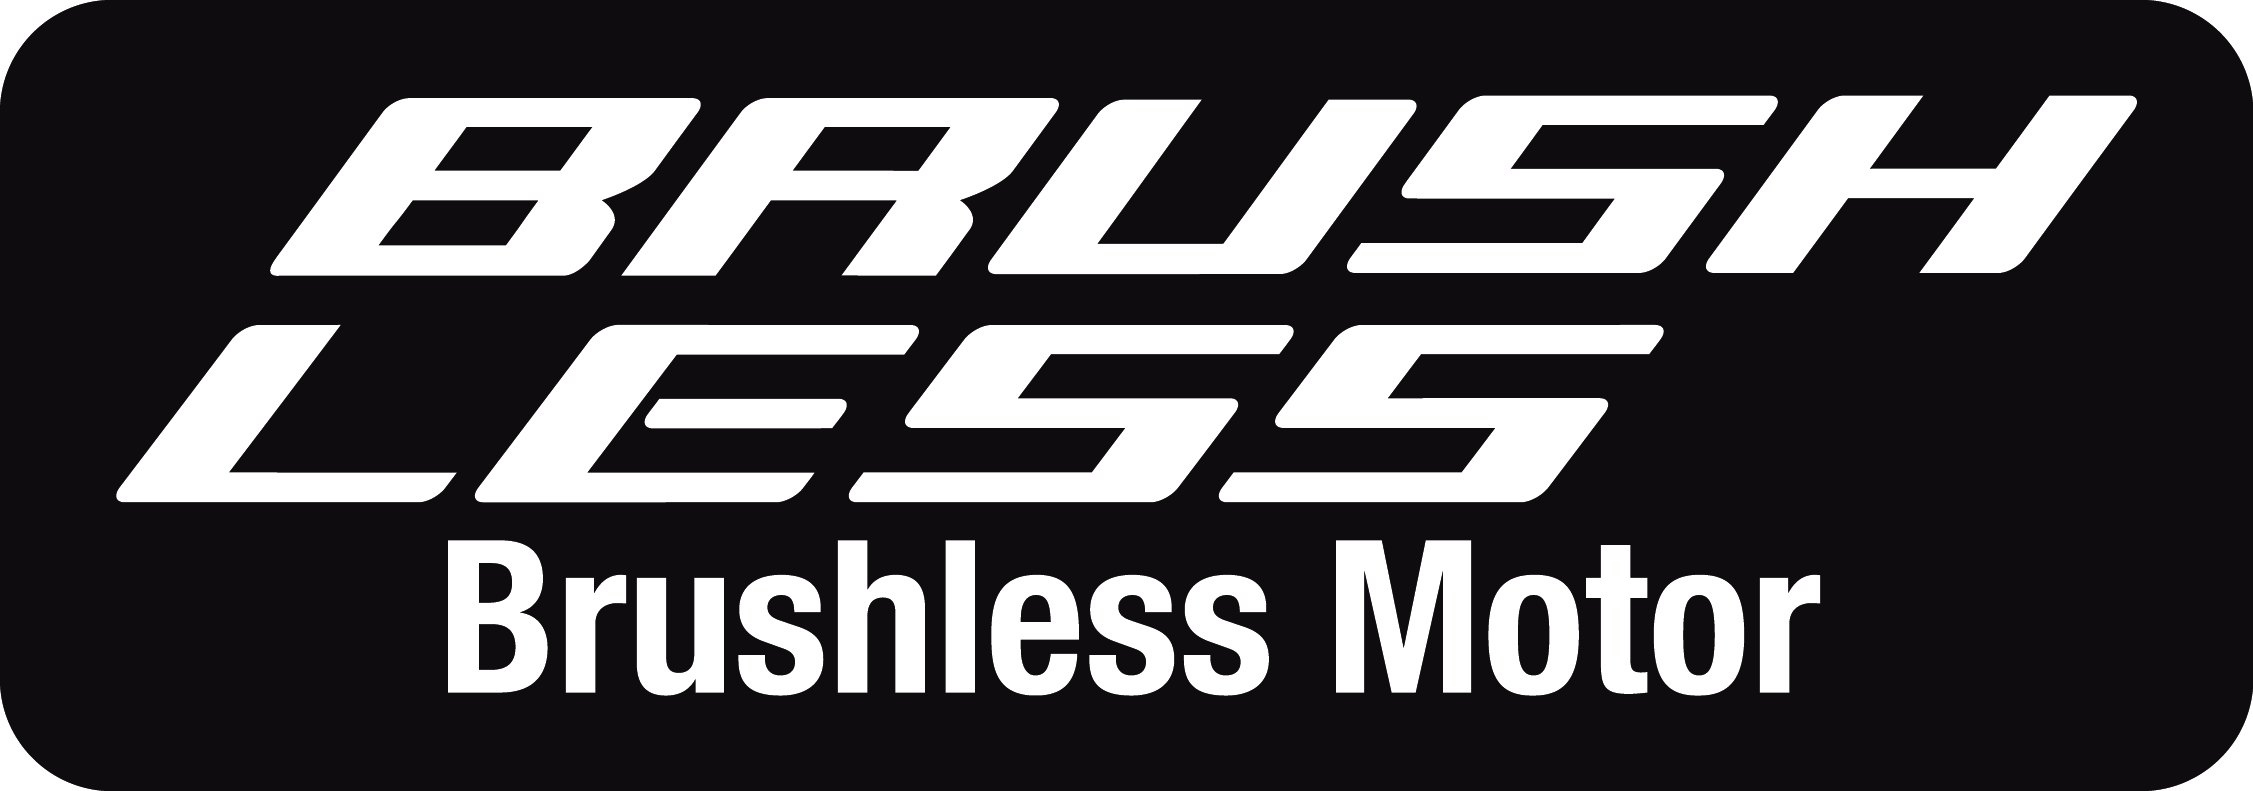 brushless.jpg